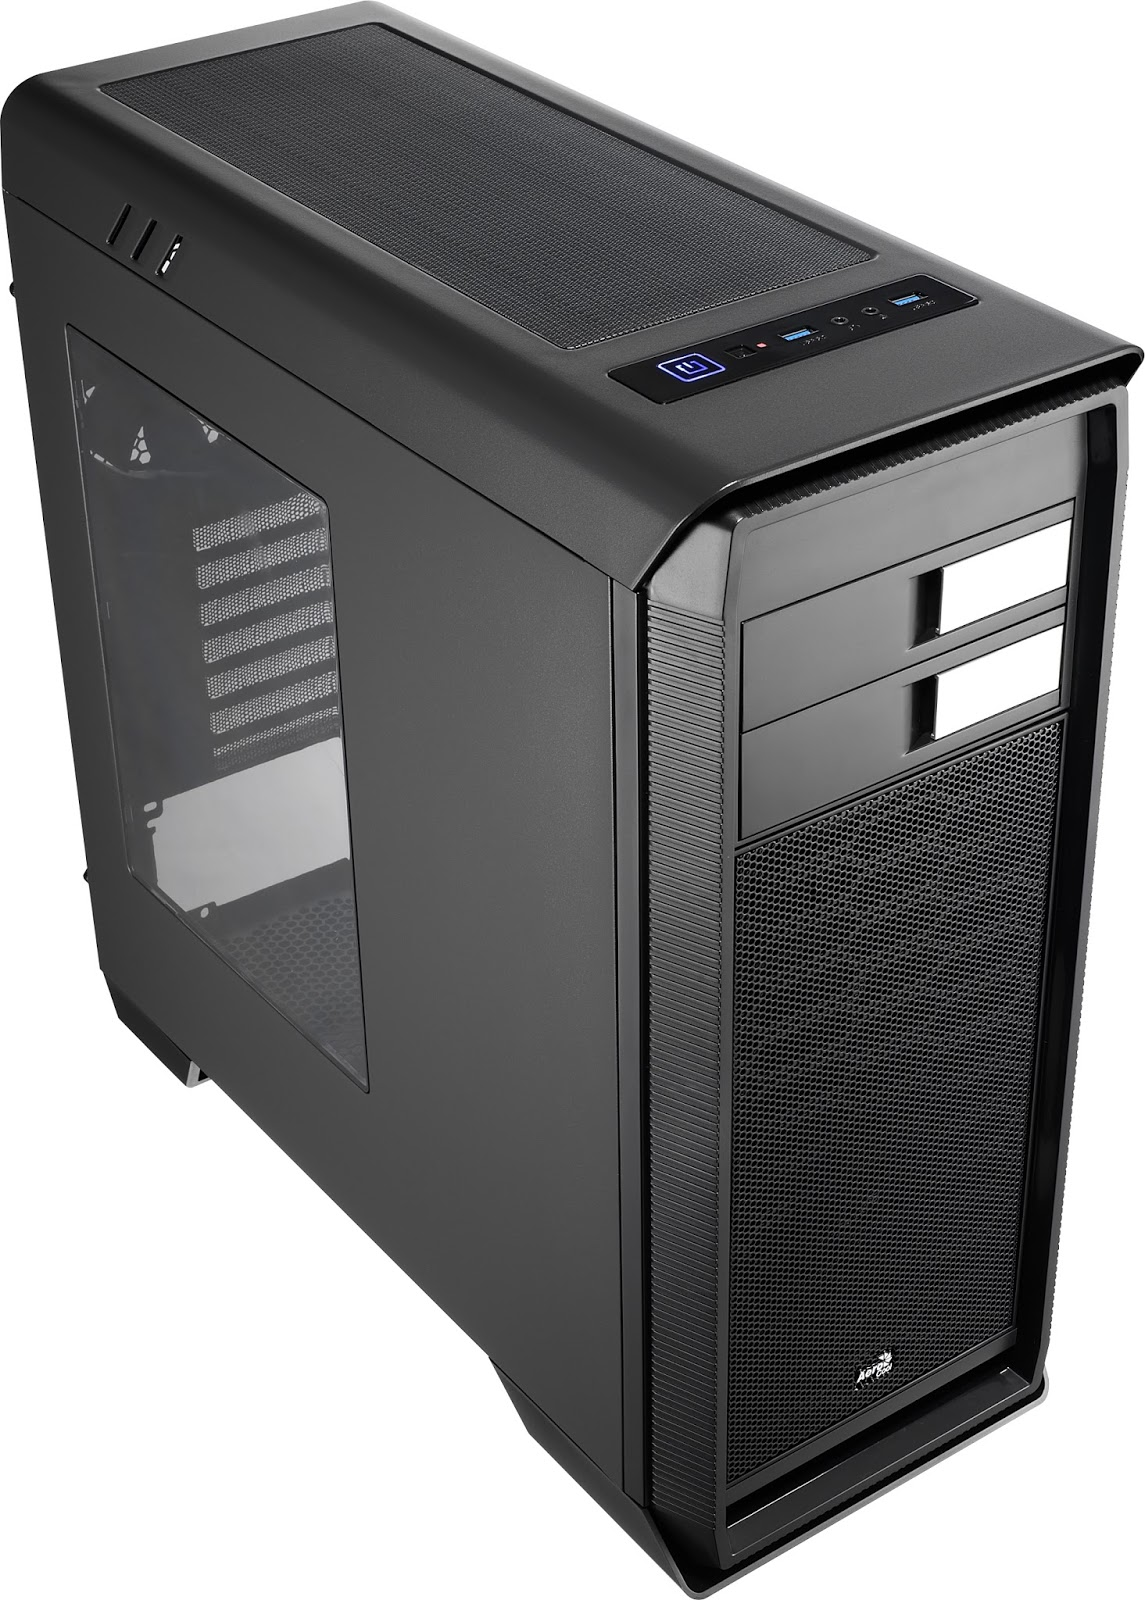 Aerocool PGS Aero 1000 Mid Tower Case - Black